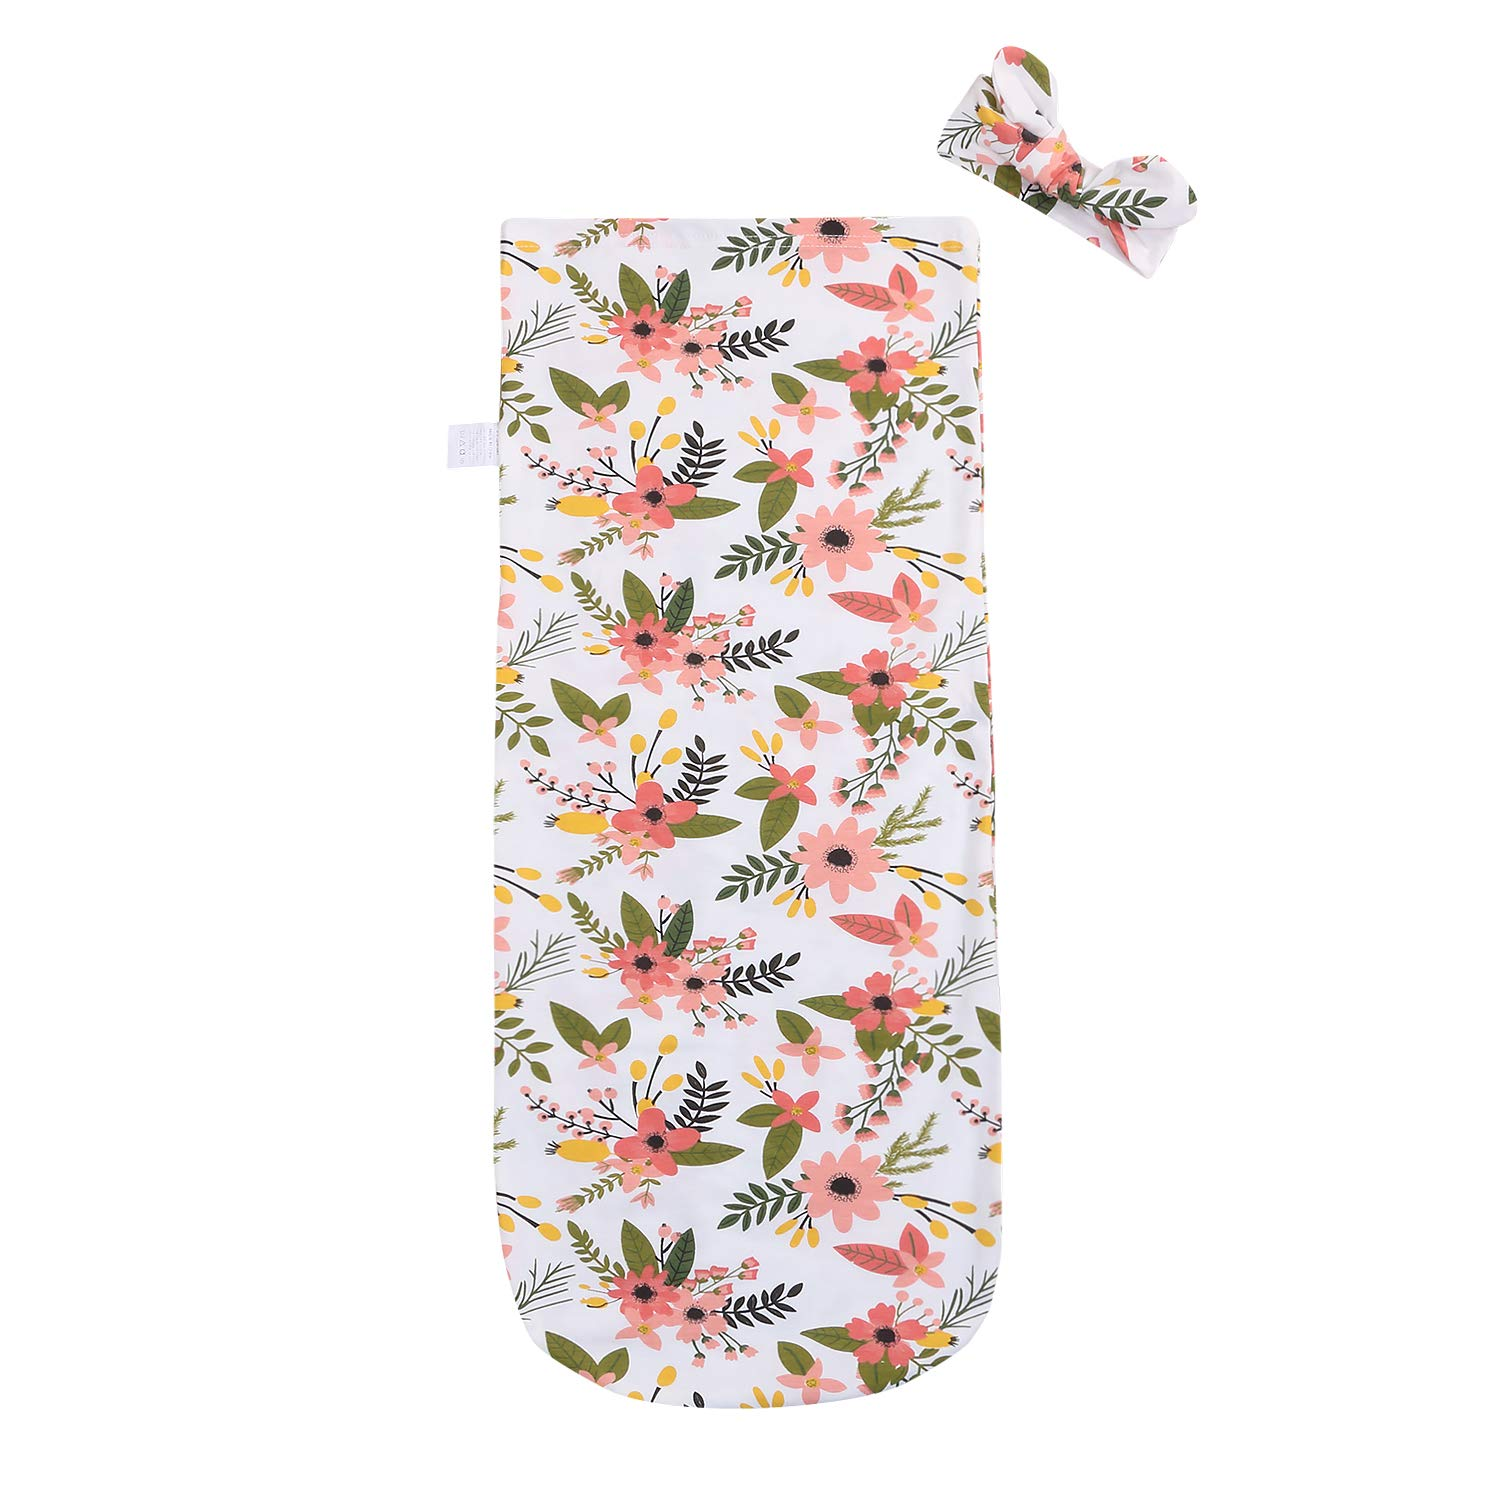 2PCS Newborn Infant Baby Boy Girl Swaddle Blankets Donut Floral Sleeping Bag Receiving Blankets with Headband Outfits